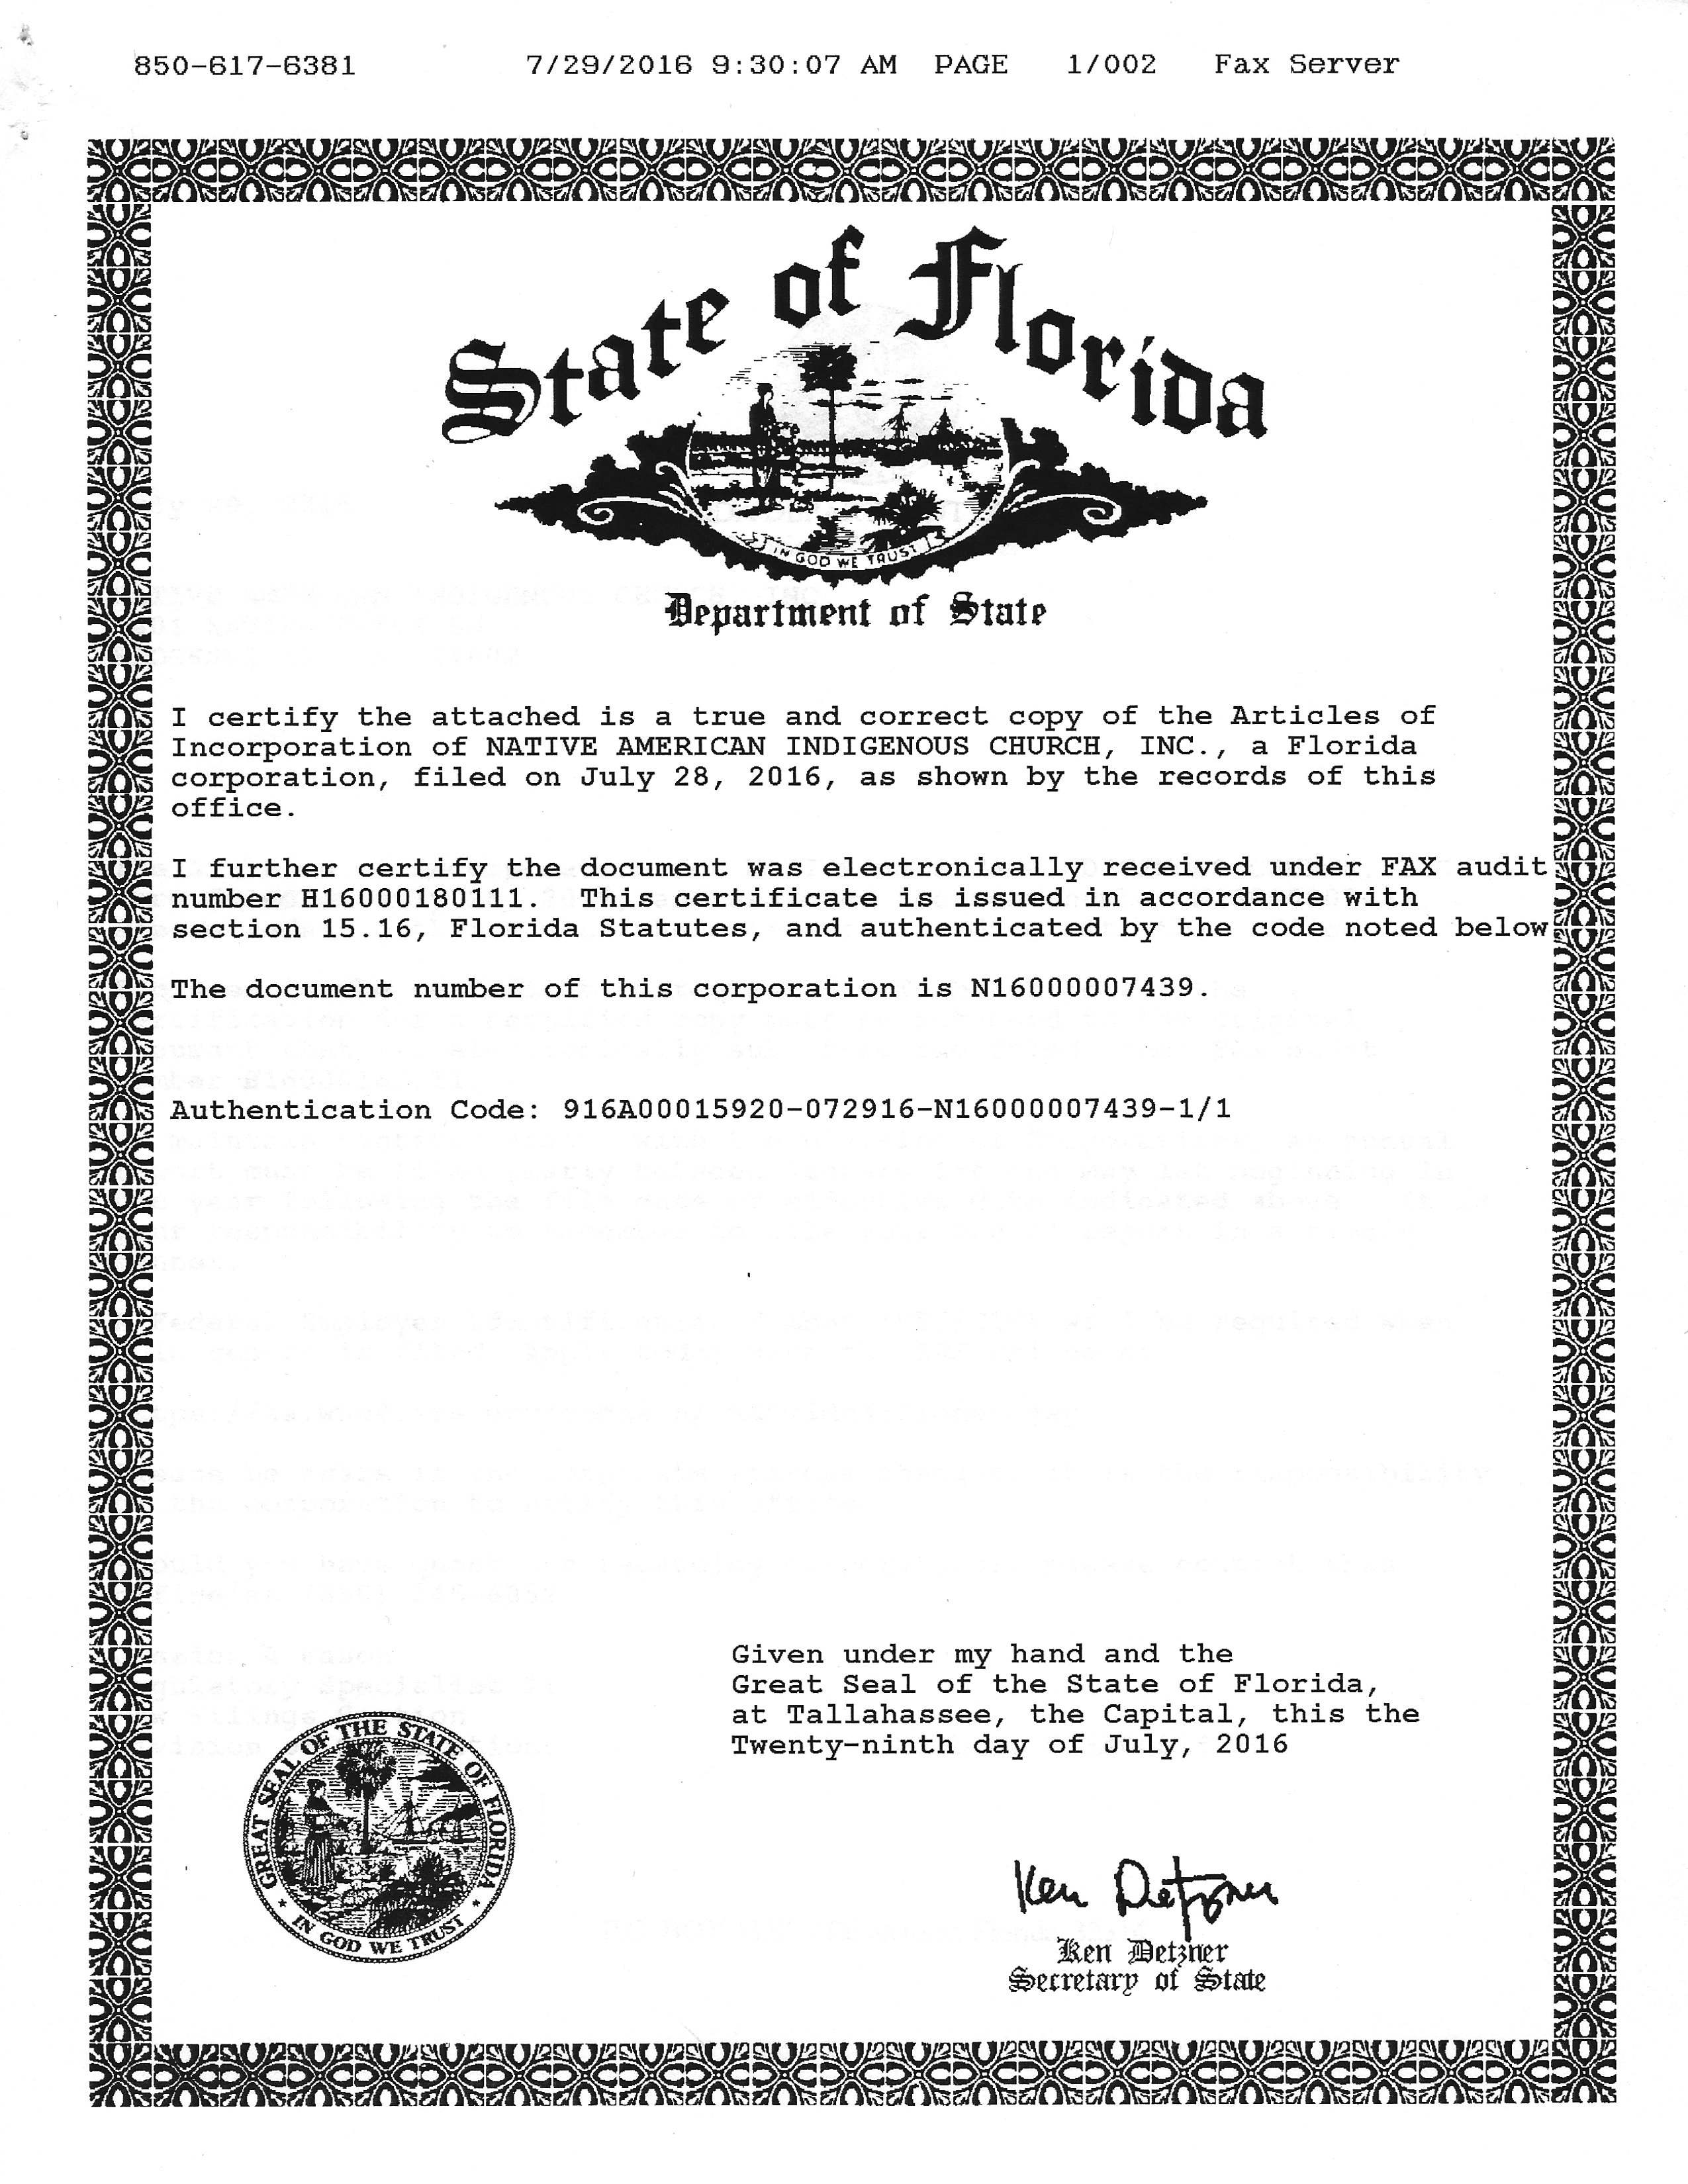 Oklevueha native american church of somaveda state of florida certificate of existence native american indigenous church florida corporate charter 1betcityfo Gallery